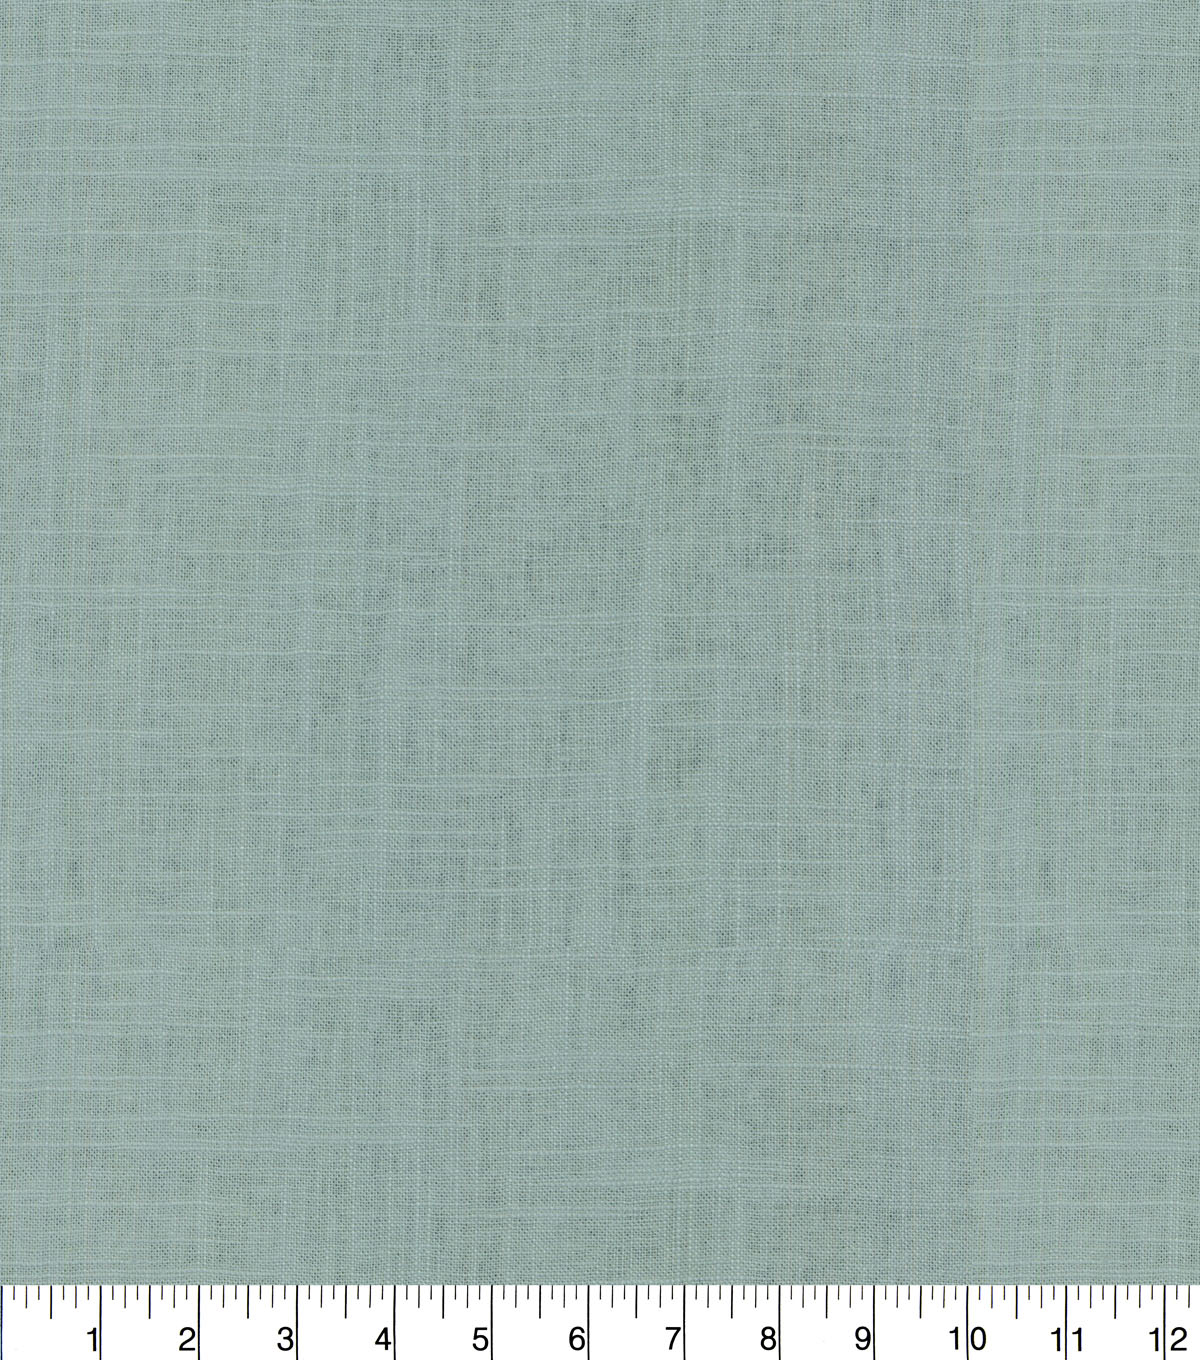 Home Decor 8\u0022x8\u0022 Fabric Swatch-P/K Lifestyles Shoreline Capri